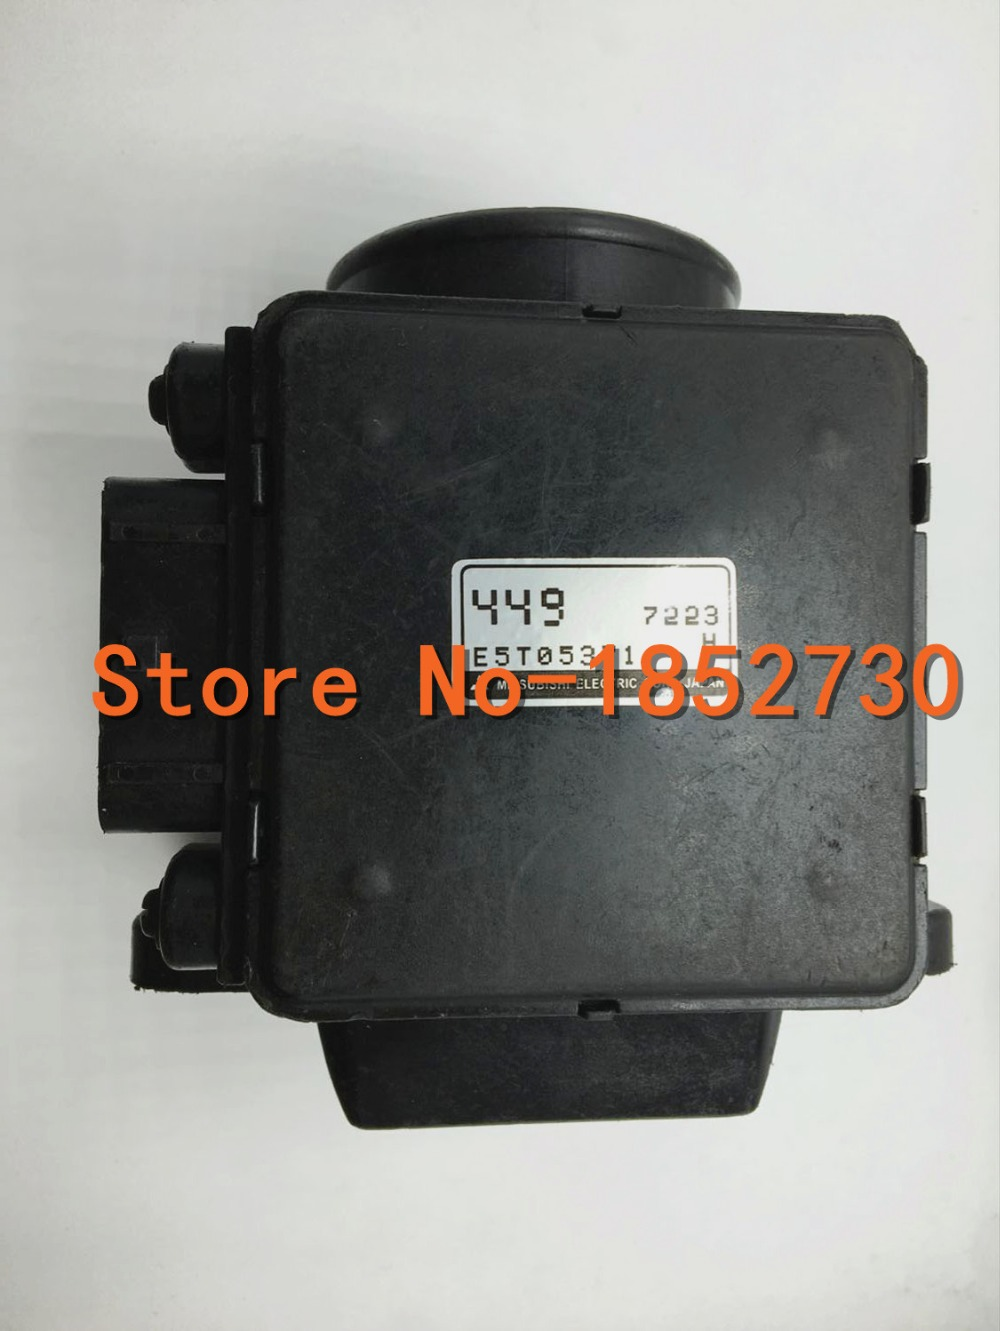 1 High Quality Mass Air Flow Sensor Md172449 E5t05371 For Nissan Sentra 2014 Location Shipping Terms